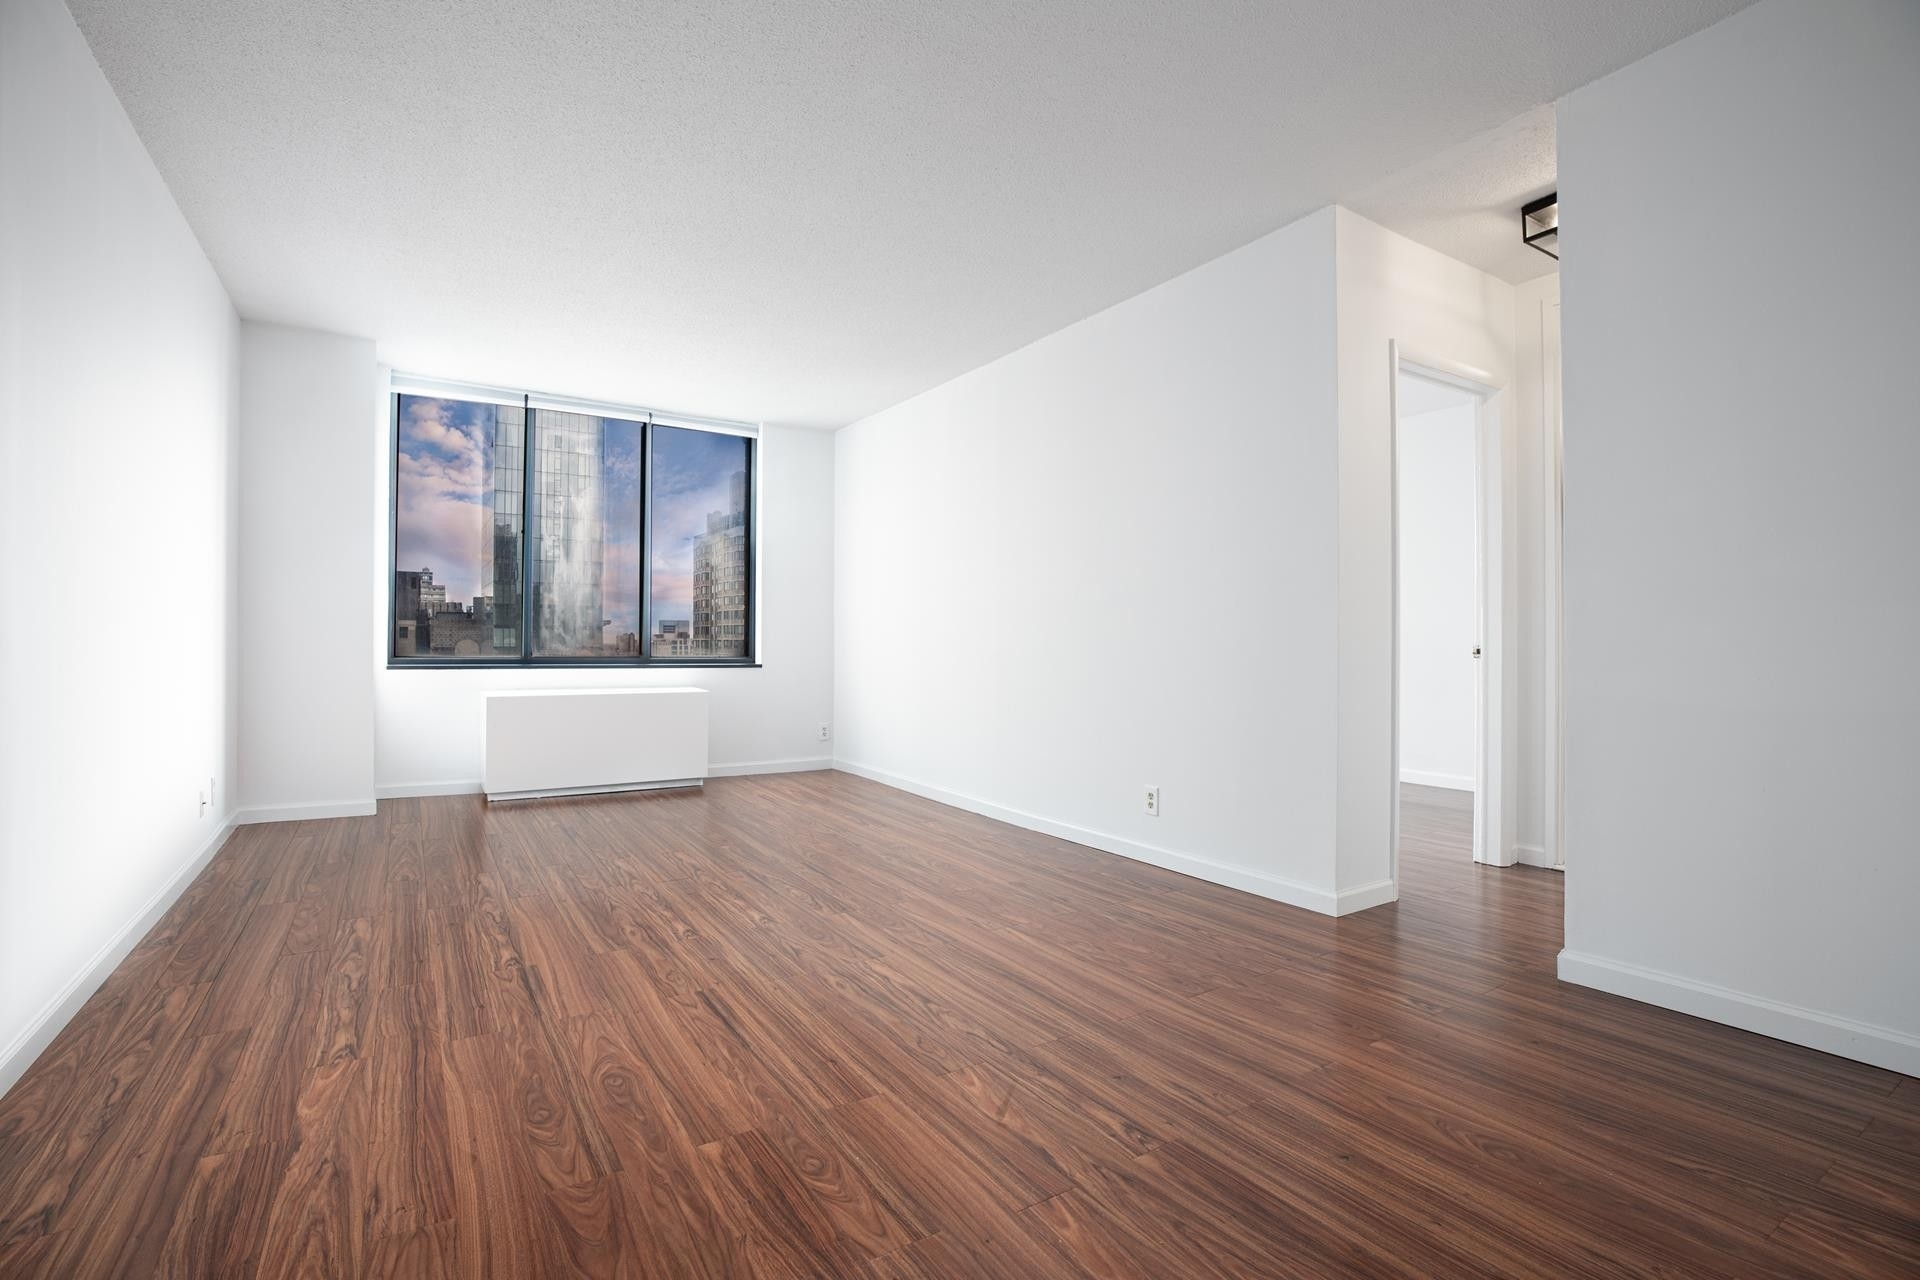 Condominium at MADISON GREEN, 5 East 22nd St, 22B Flatiron District, New York, NY 10010